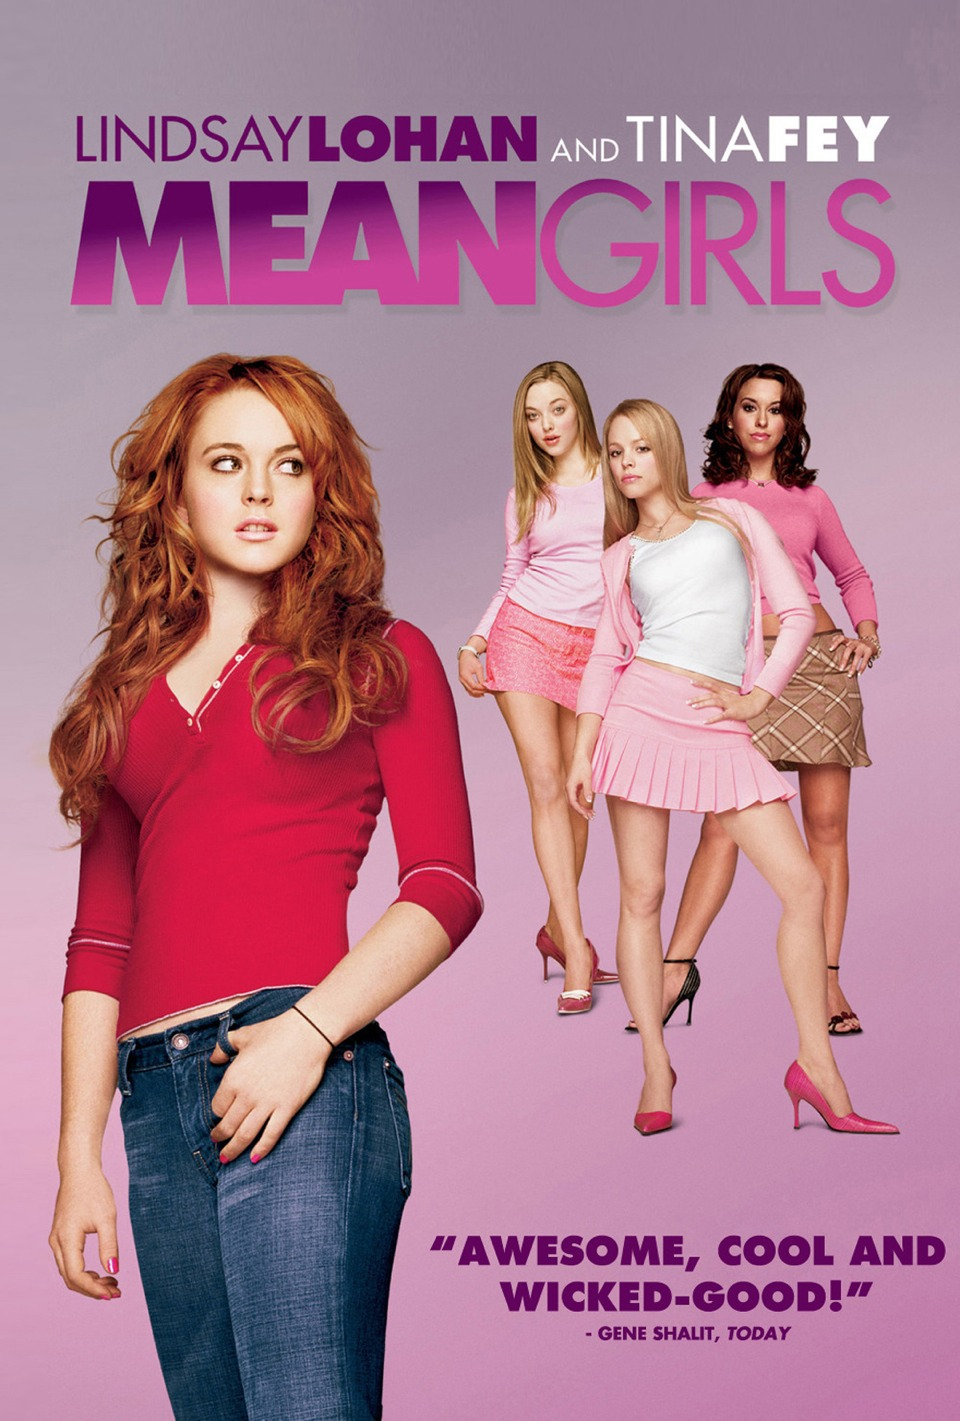 MEAN GIRLS - comedy